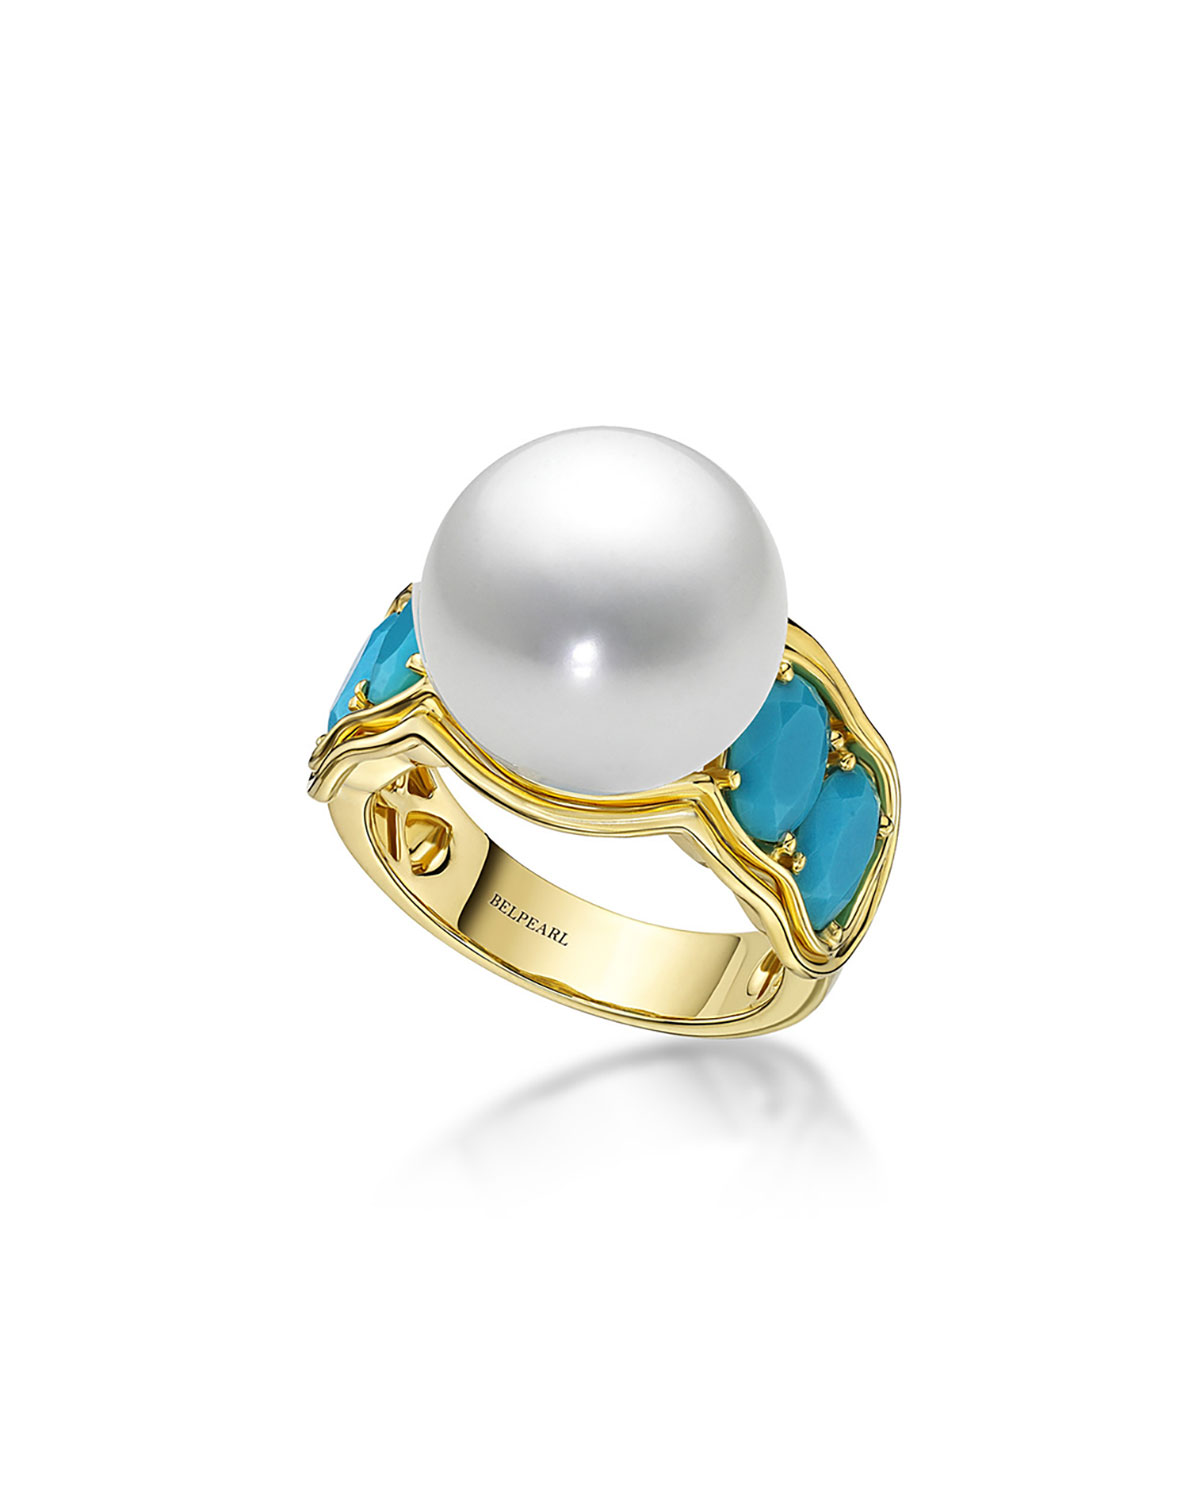 BELPEARL Aura South Sea Pearl & Turquoise Ring